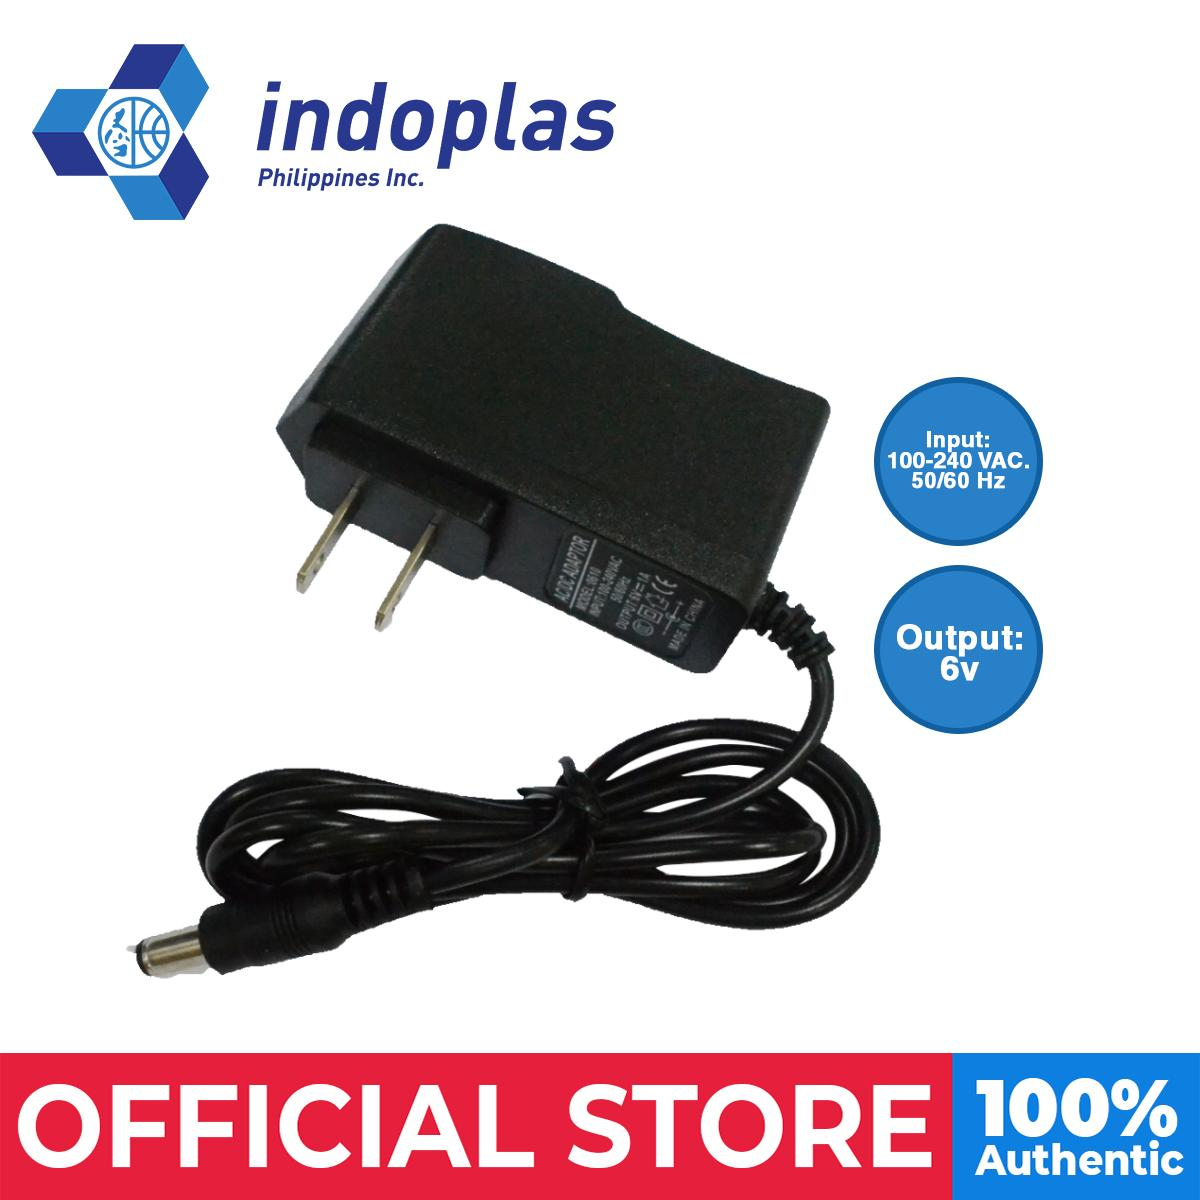 Indoplas Bp Ac/dc Adapter 6v By Medical Supplies Philippines.